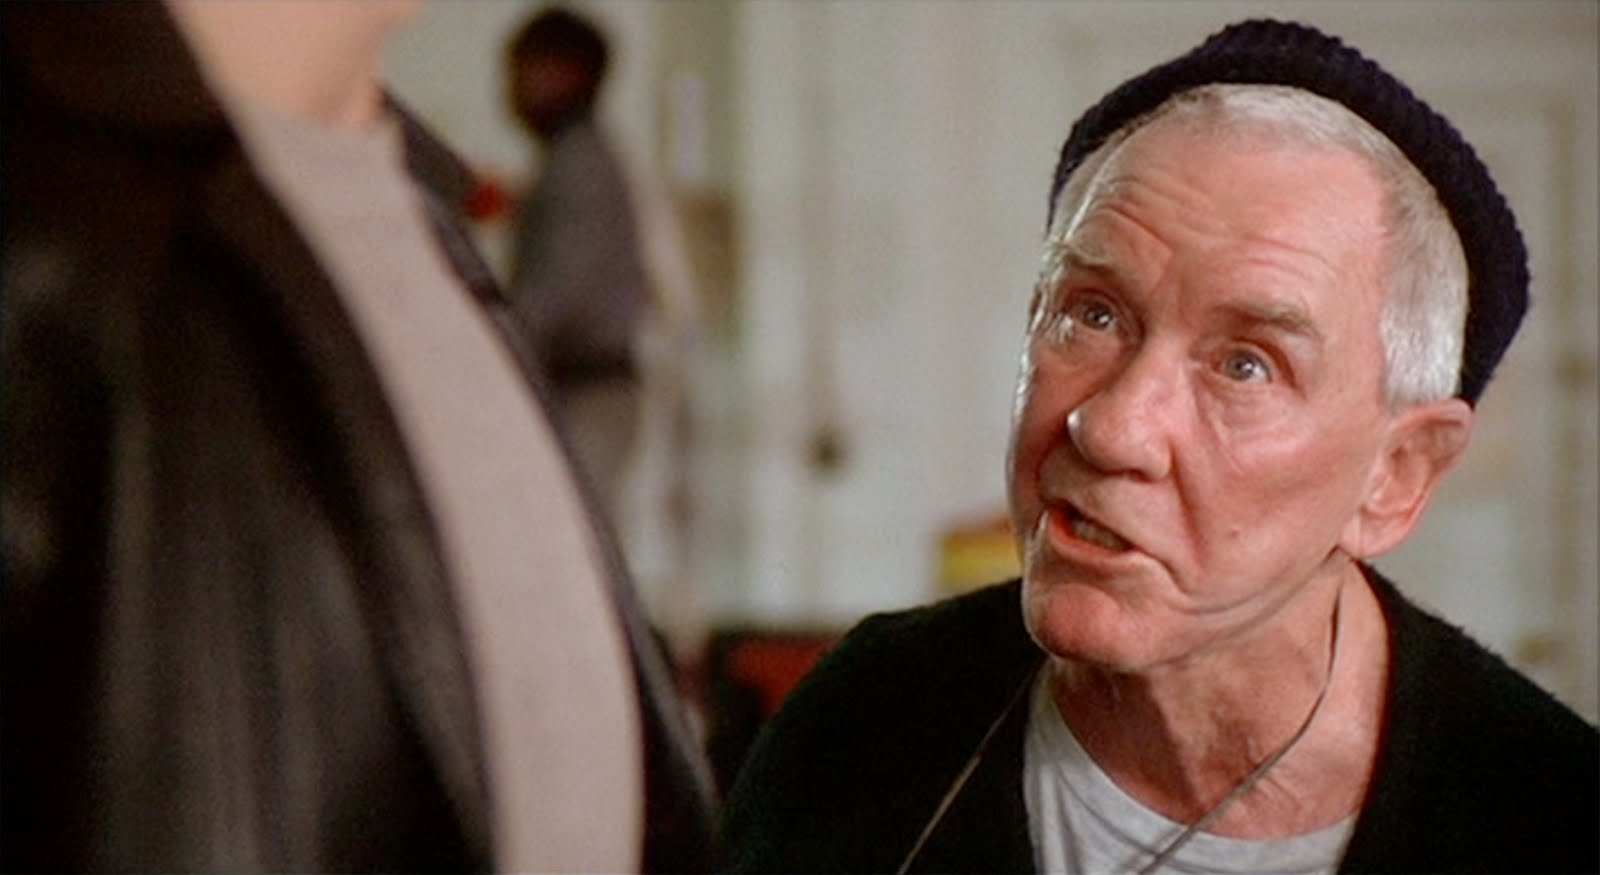 rocky burgess meredith 1908 in Pop Culture, AKA The Last Time the Chicago Cubs Won a World Series Title